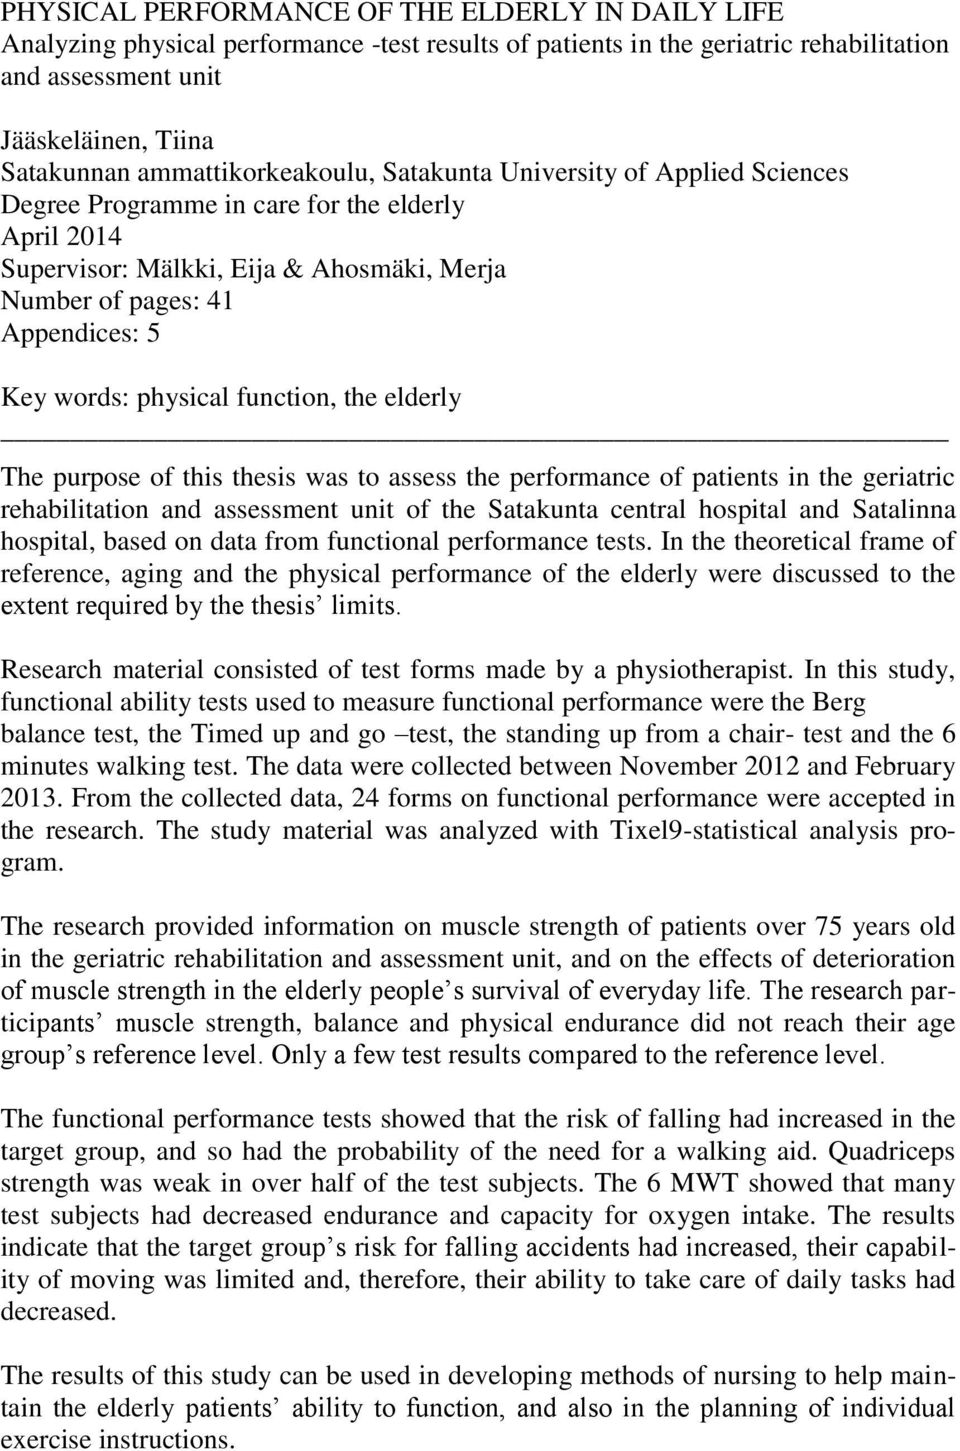 words: physical function, the elderly The purpose of this thesis was to assess the performance of patients in the geriatric rehabilitation and assessment unit of the Satakunta central hospital and